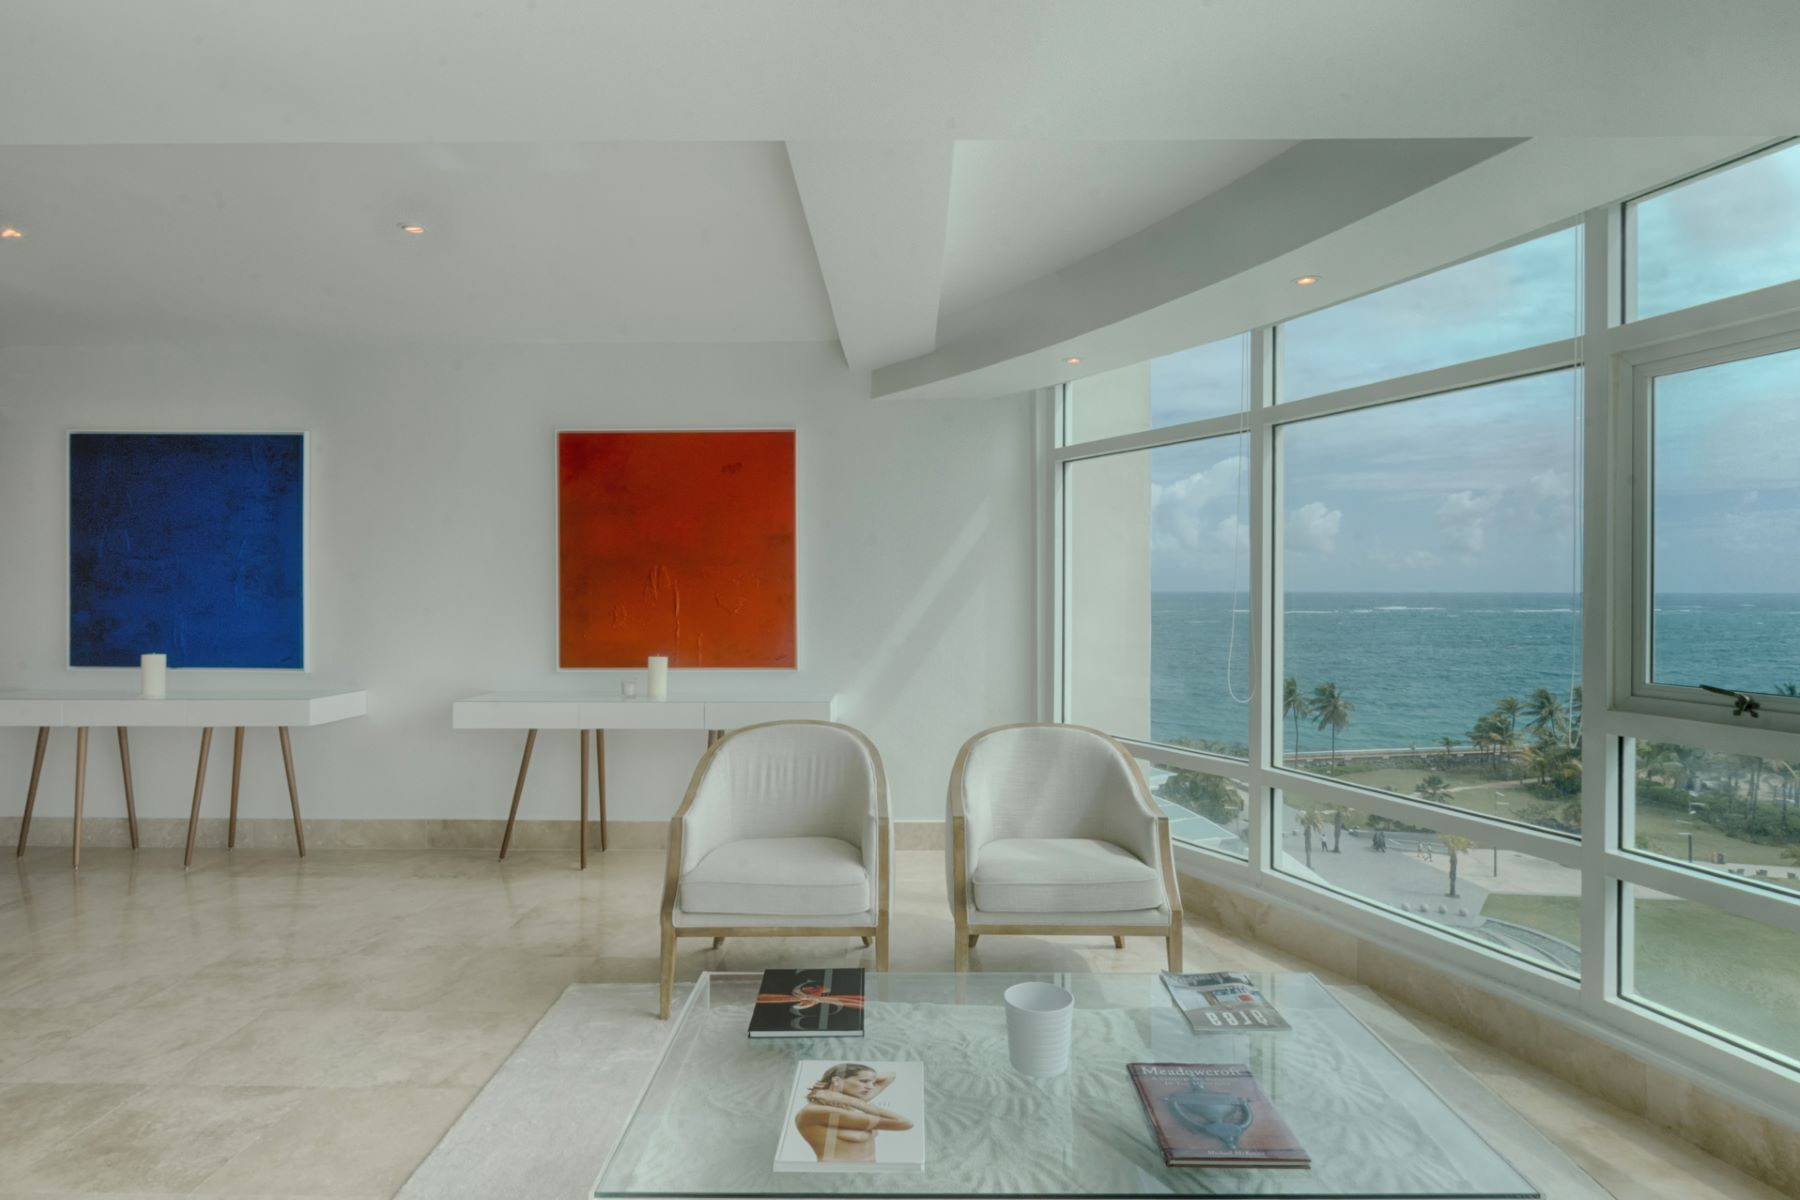 Additional photo for property listing at Modern 9th floor Ocean View at The Bristol 1052 Ashford Ave, Apt 9B San Juan, Puerto Rico 00907 プエルトリコ